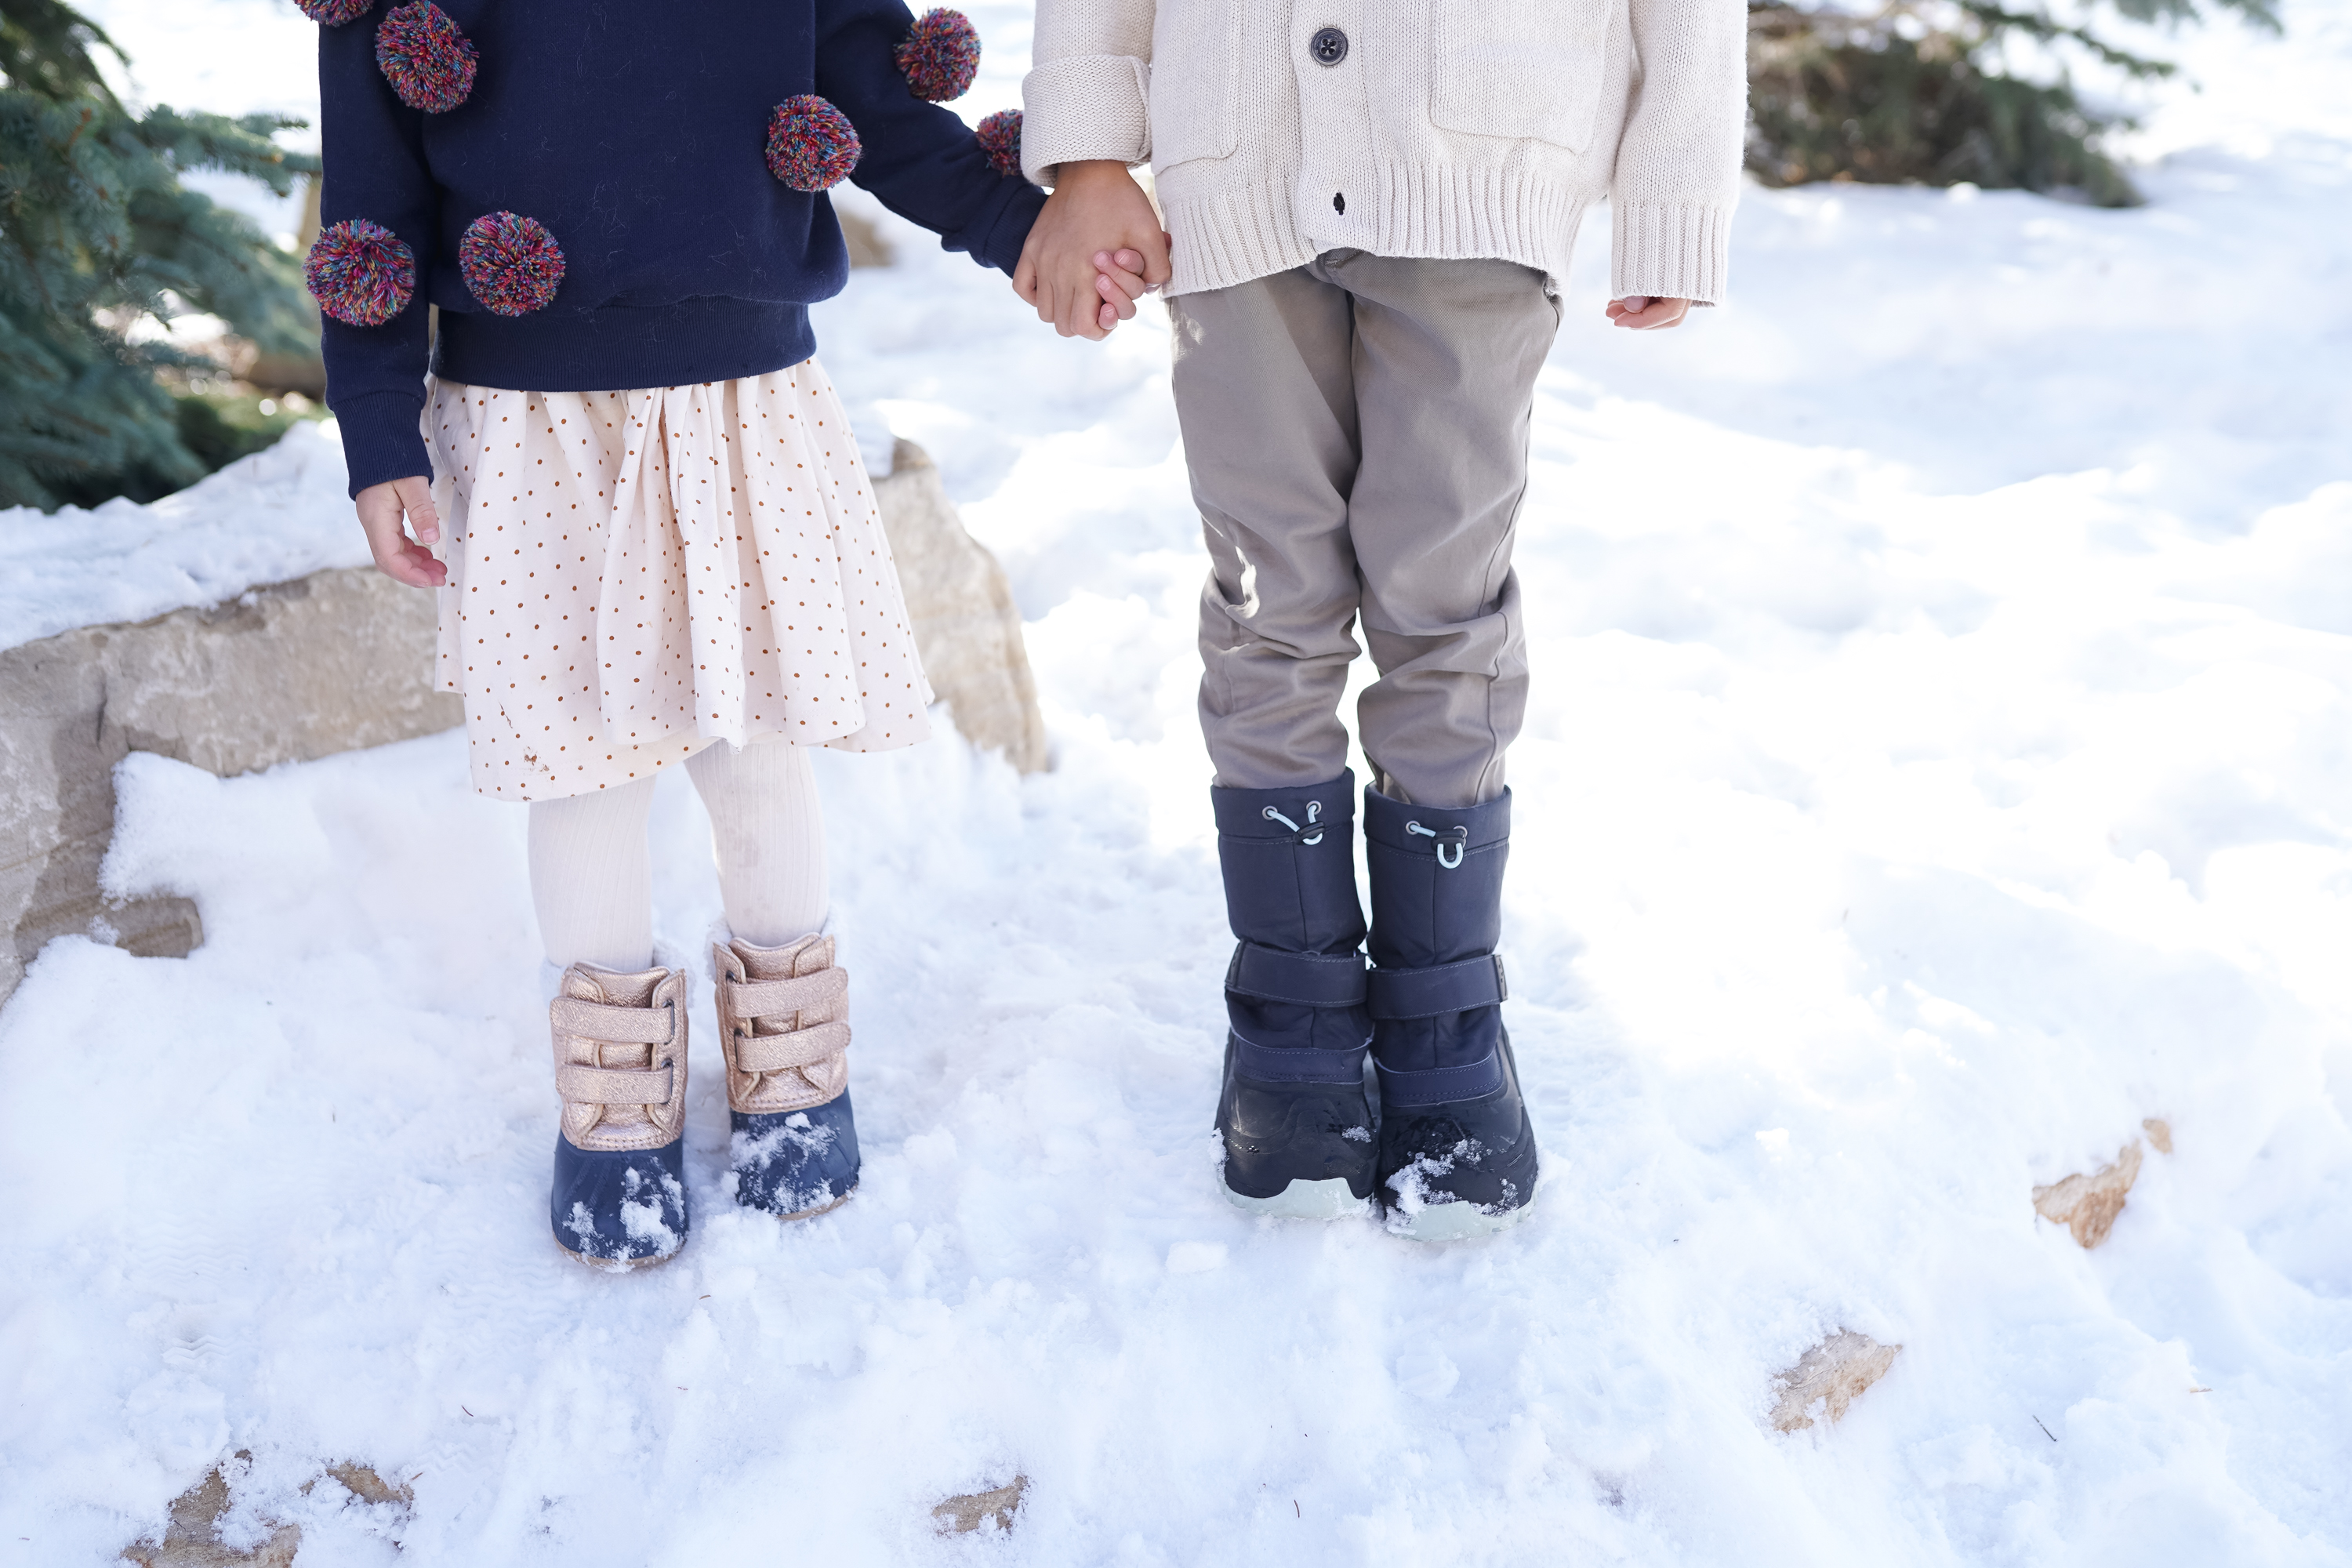 9b3f7ac9d5 I ve been getting a lot of questions lately on the best snow boots and  clothes for kiddos to wear during the snowy season! There are really A LOT  out there